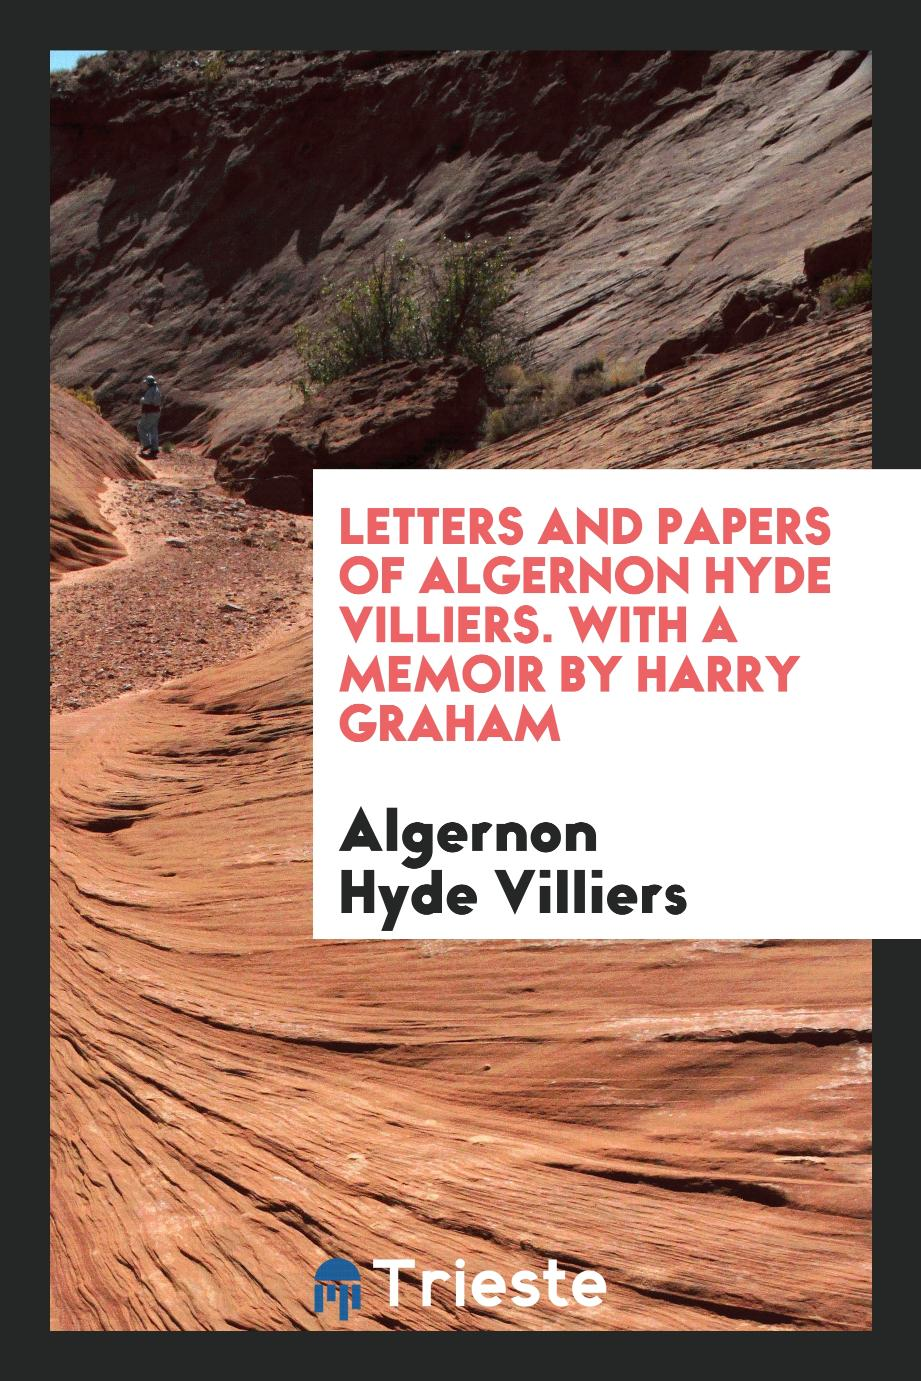 Letters and papers of Algernon Hyde Villiers. With a memoir by Harry Graham